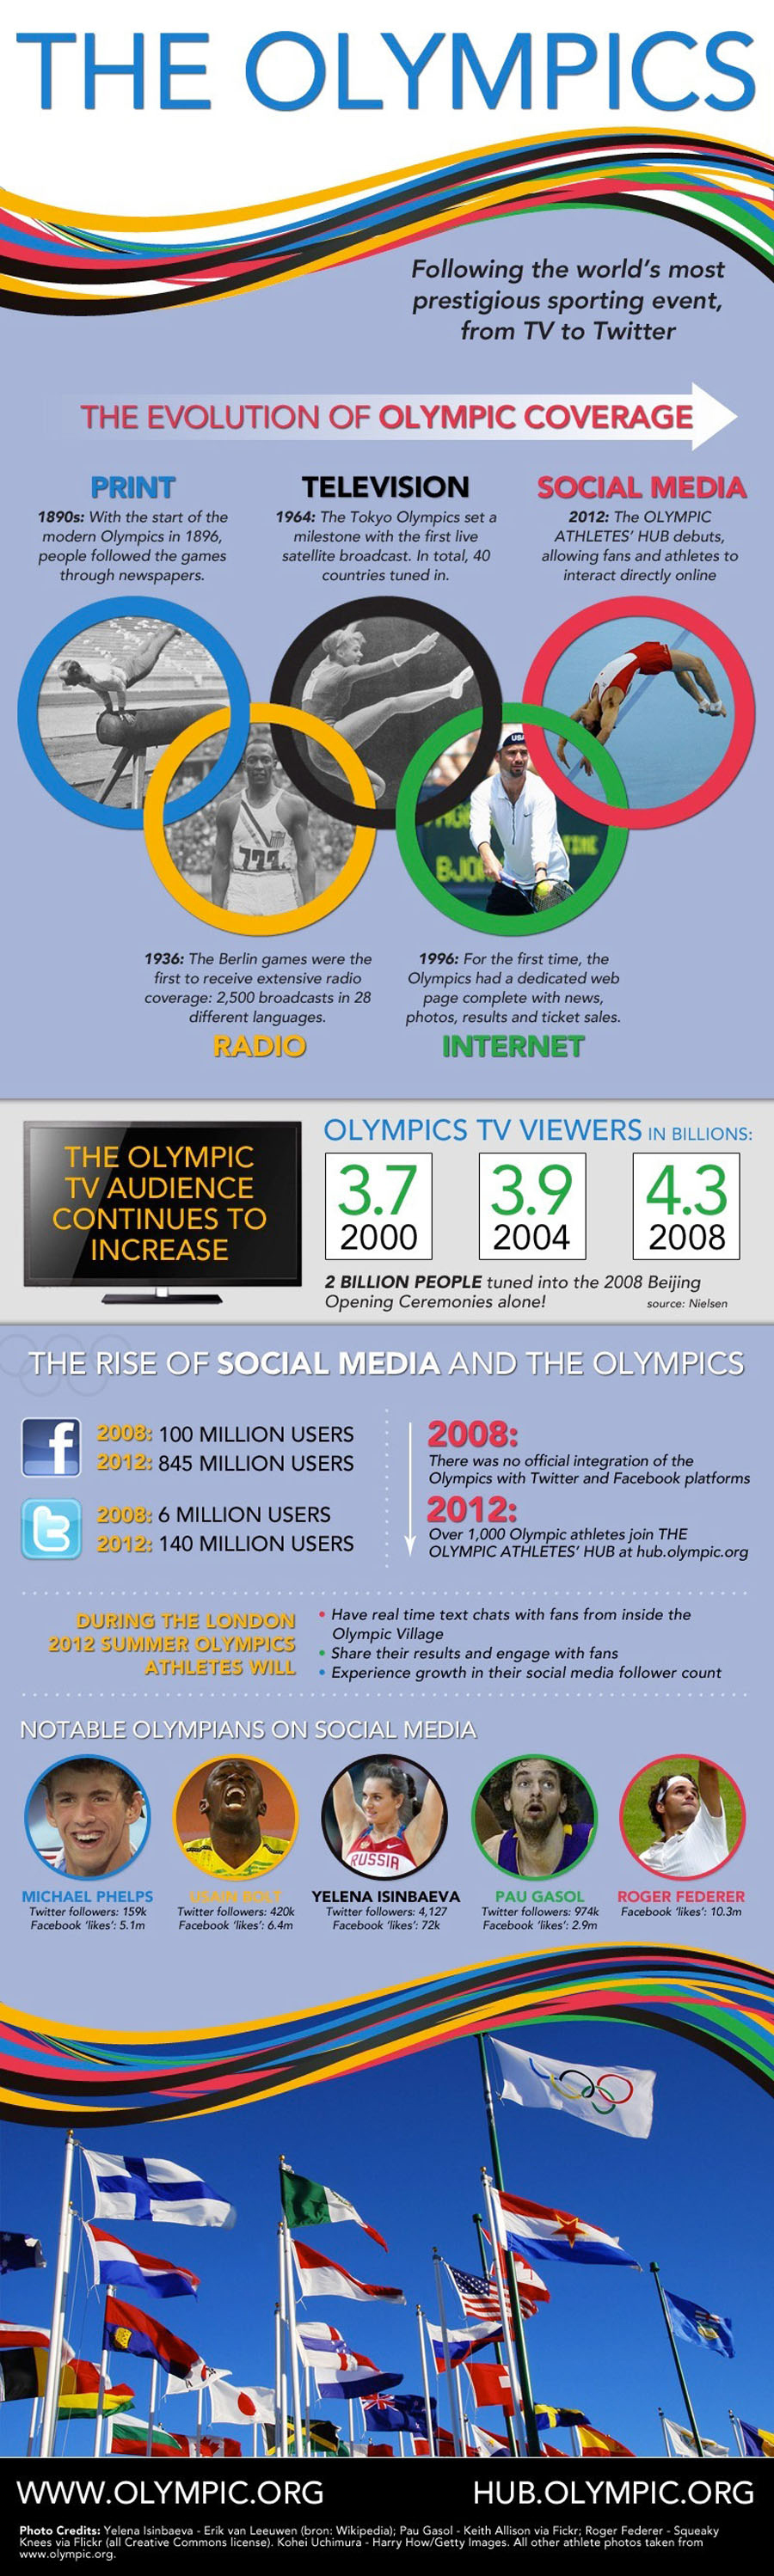 Evolution-Of-Olympic-Coverage-Infographic